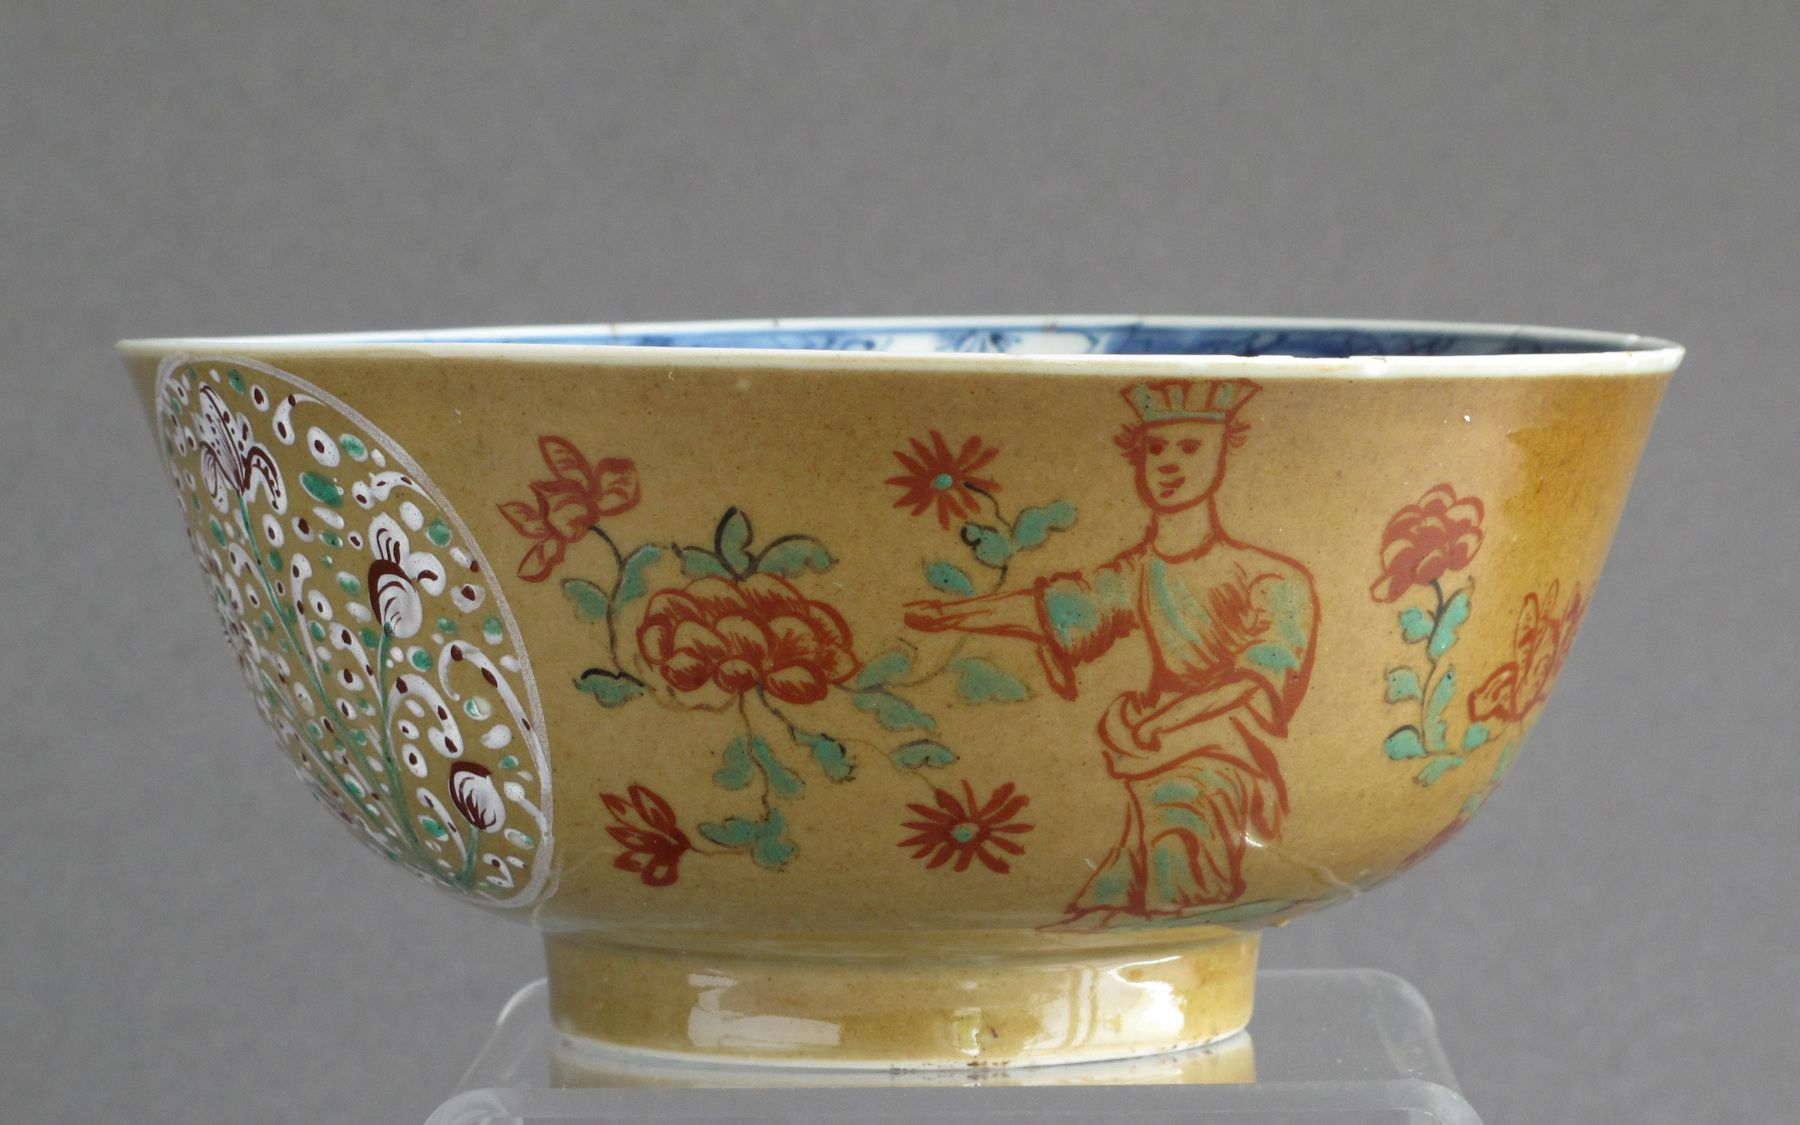 A Rare And Early Example Of A London Decorated Chinese Kangxi Period Bowl C1700 10 When Imported Into England The Bowl Had A Sim Bowl Chinese Porcelain Decor